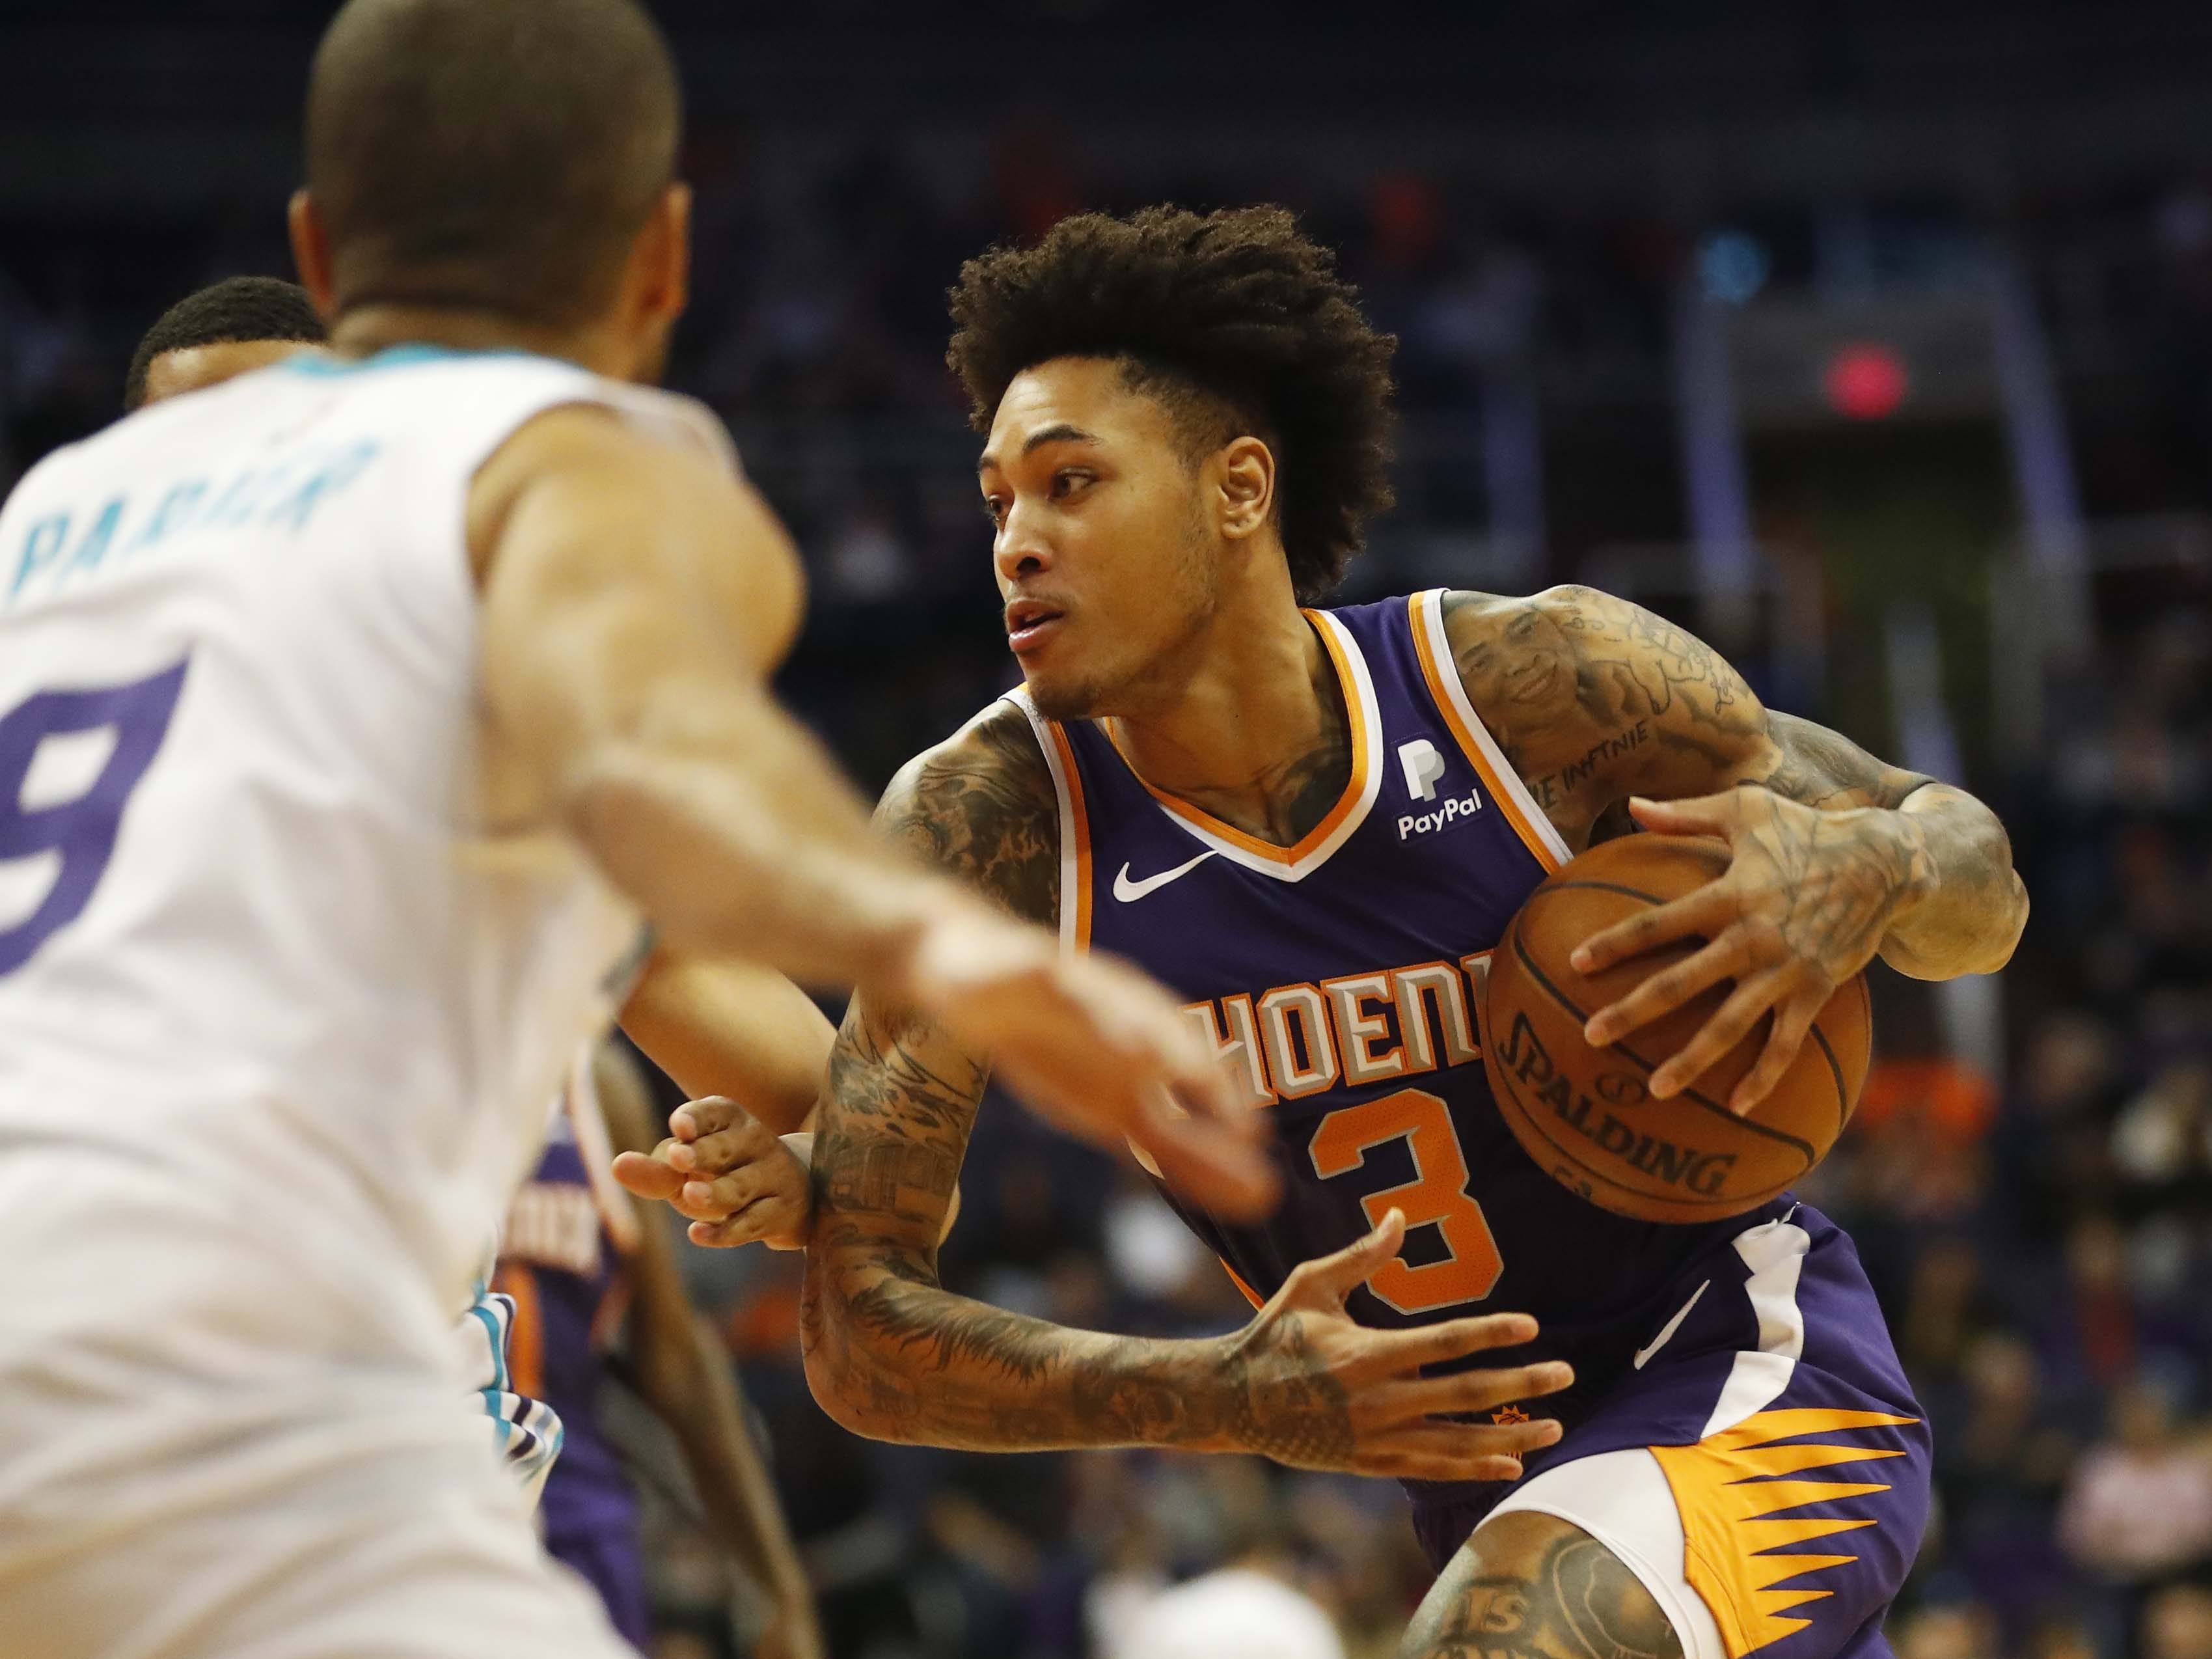 Phoenix Suns forward Kelly Oubre Jr. (3) drives towards the basket against the Charlotte Hornets during the second quarter in Phoenix January 6, 2019.